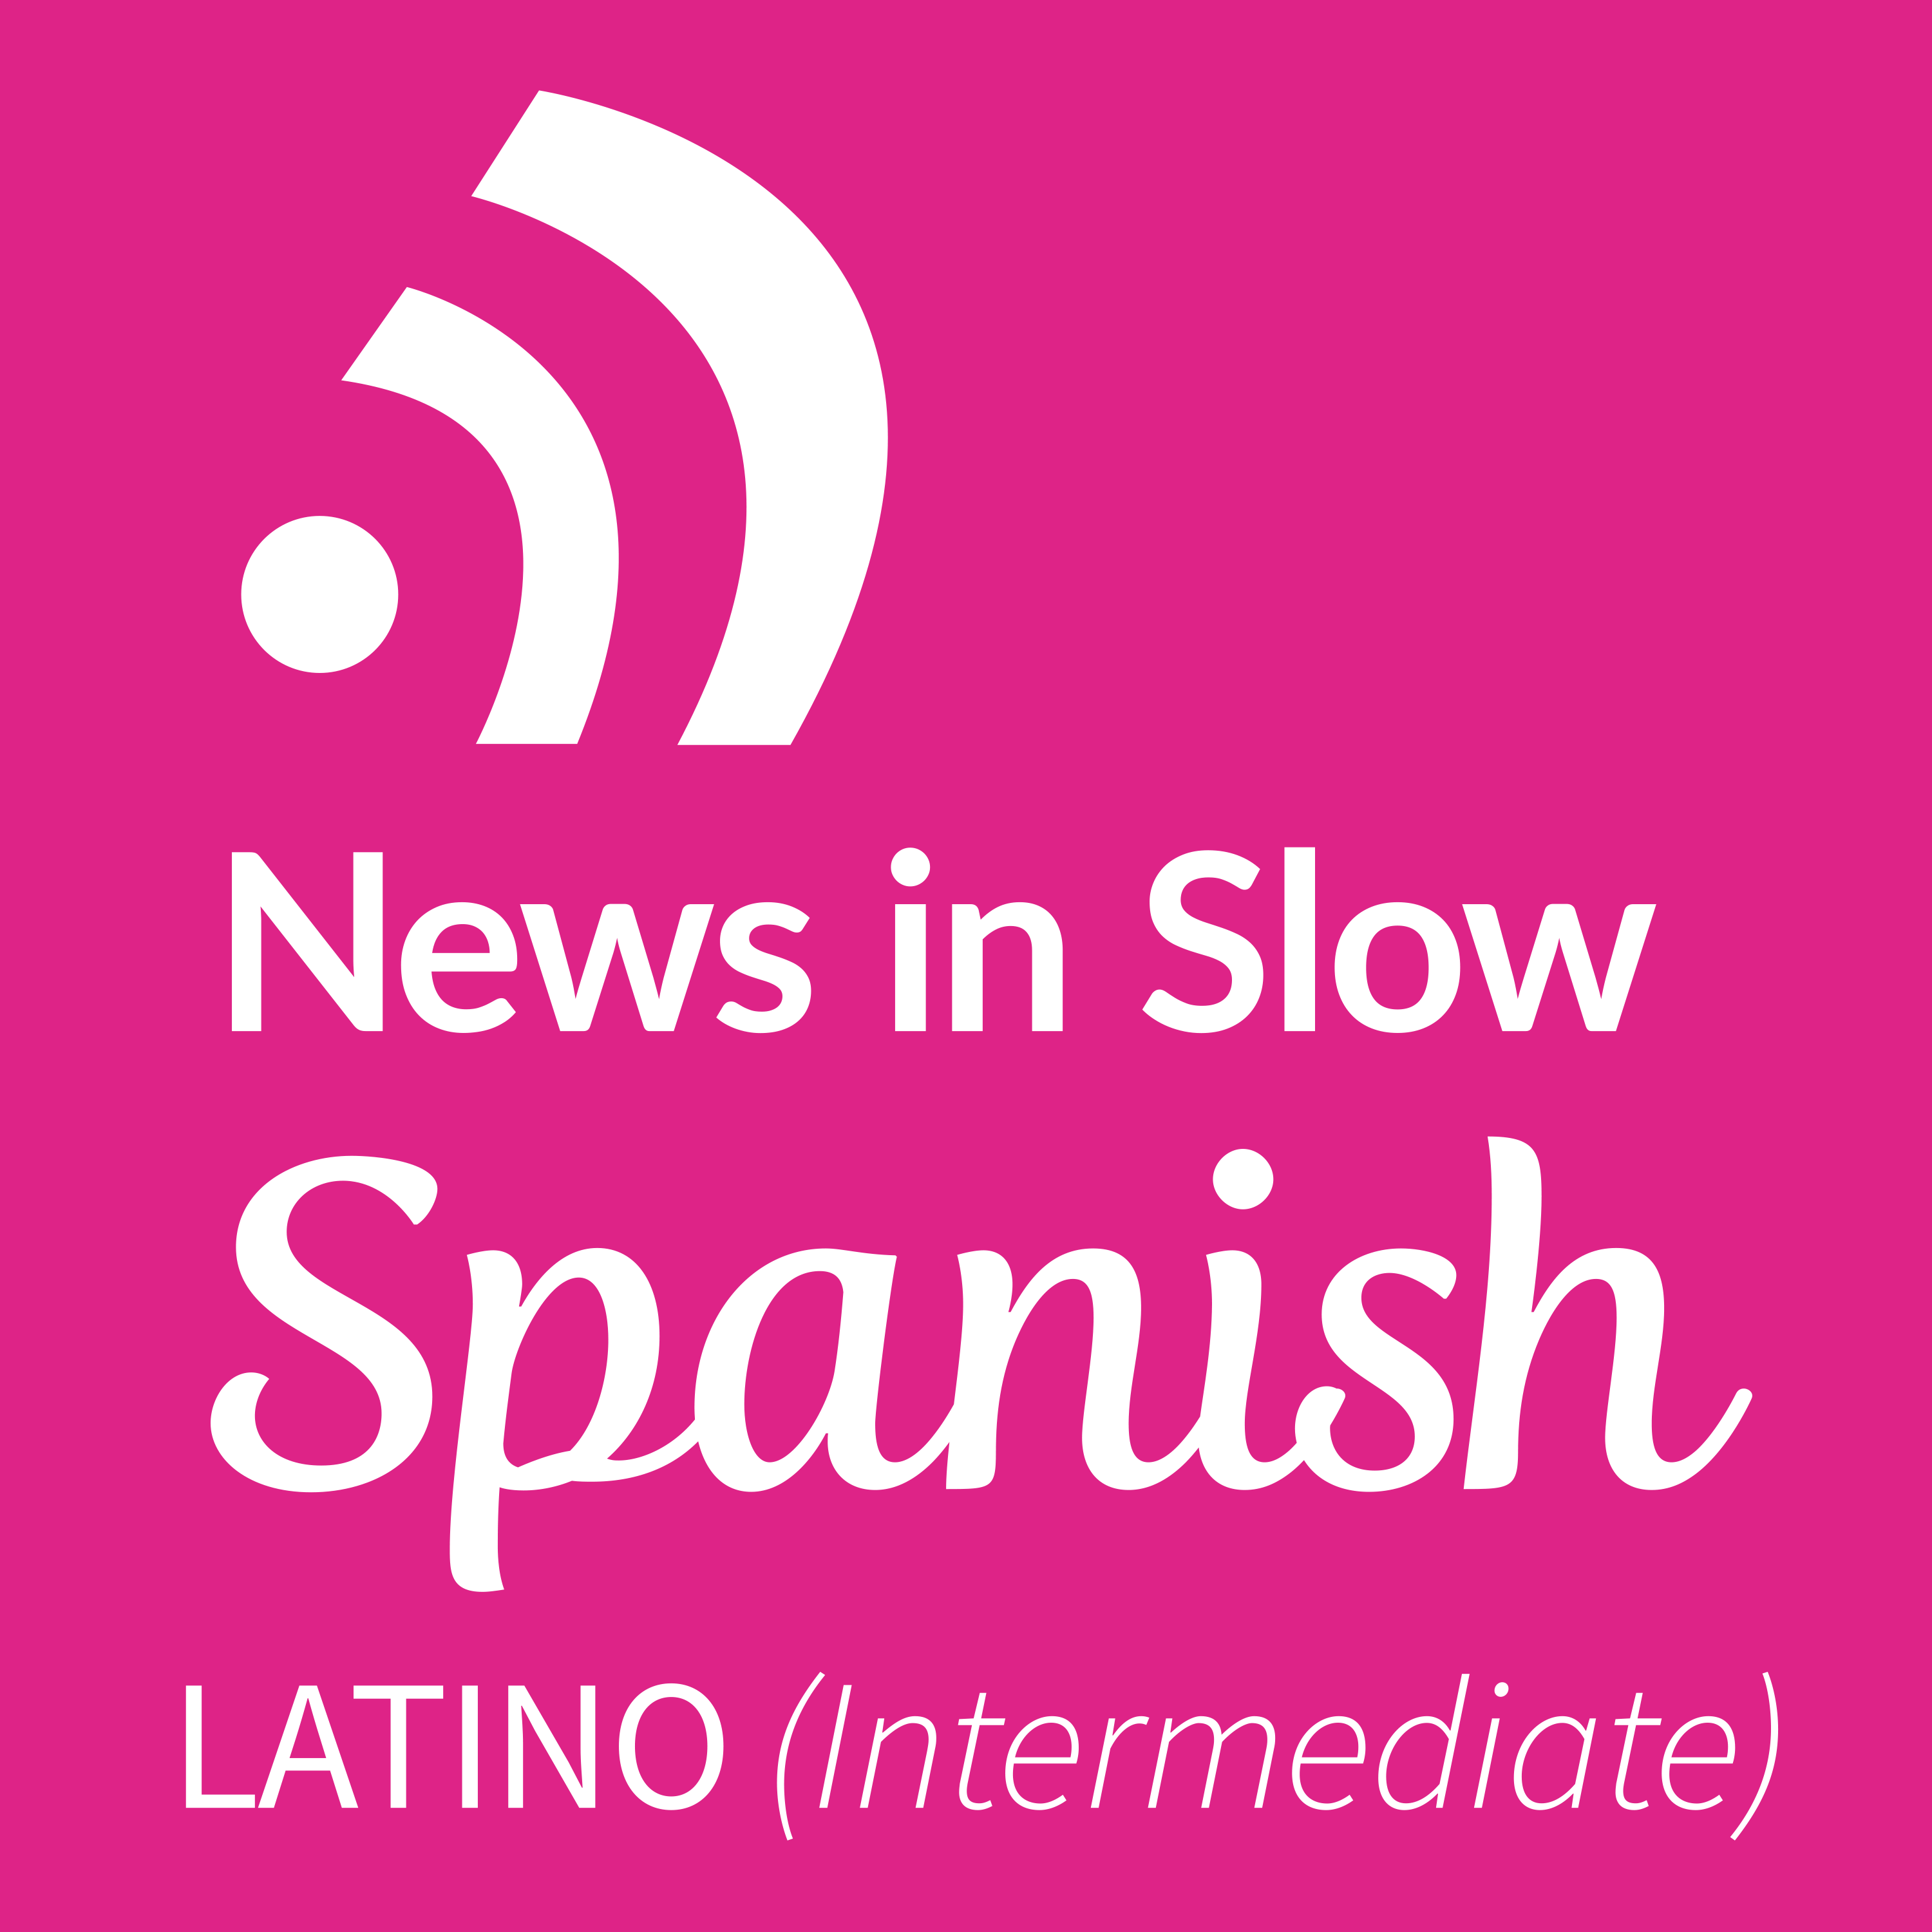 News in Slow Spanish Latino - # 172 - Language learning in the context of current events